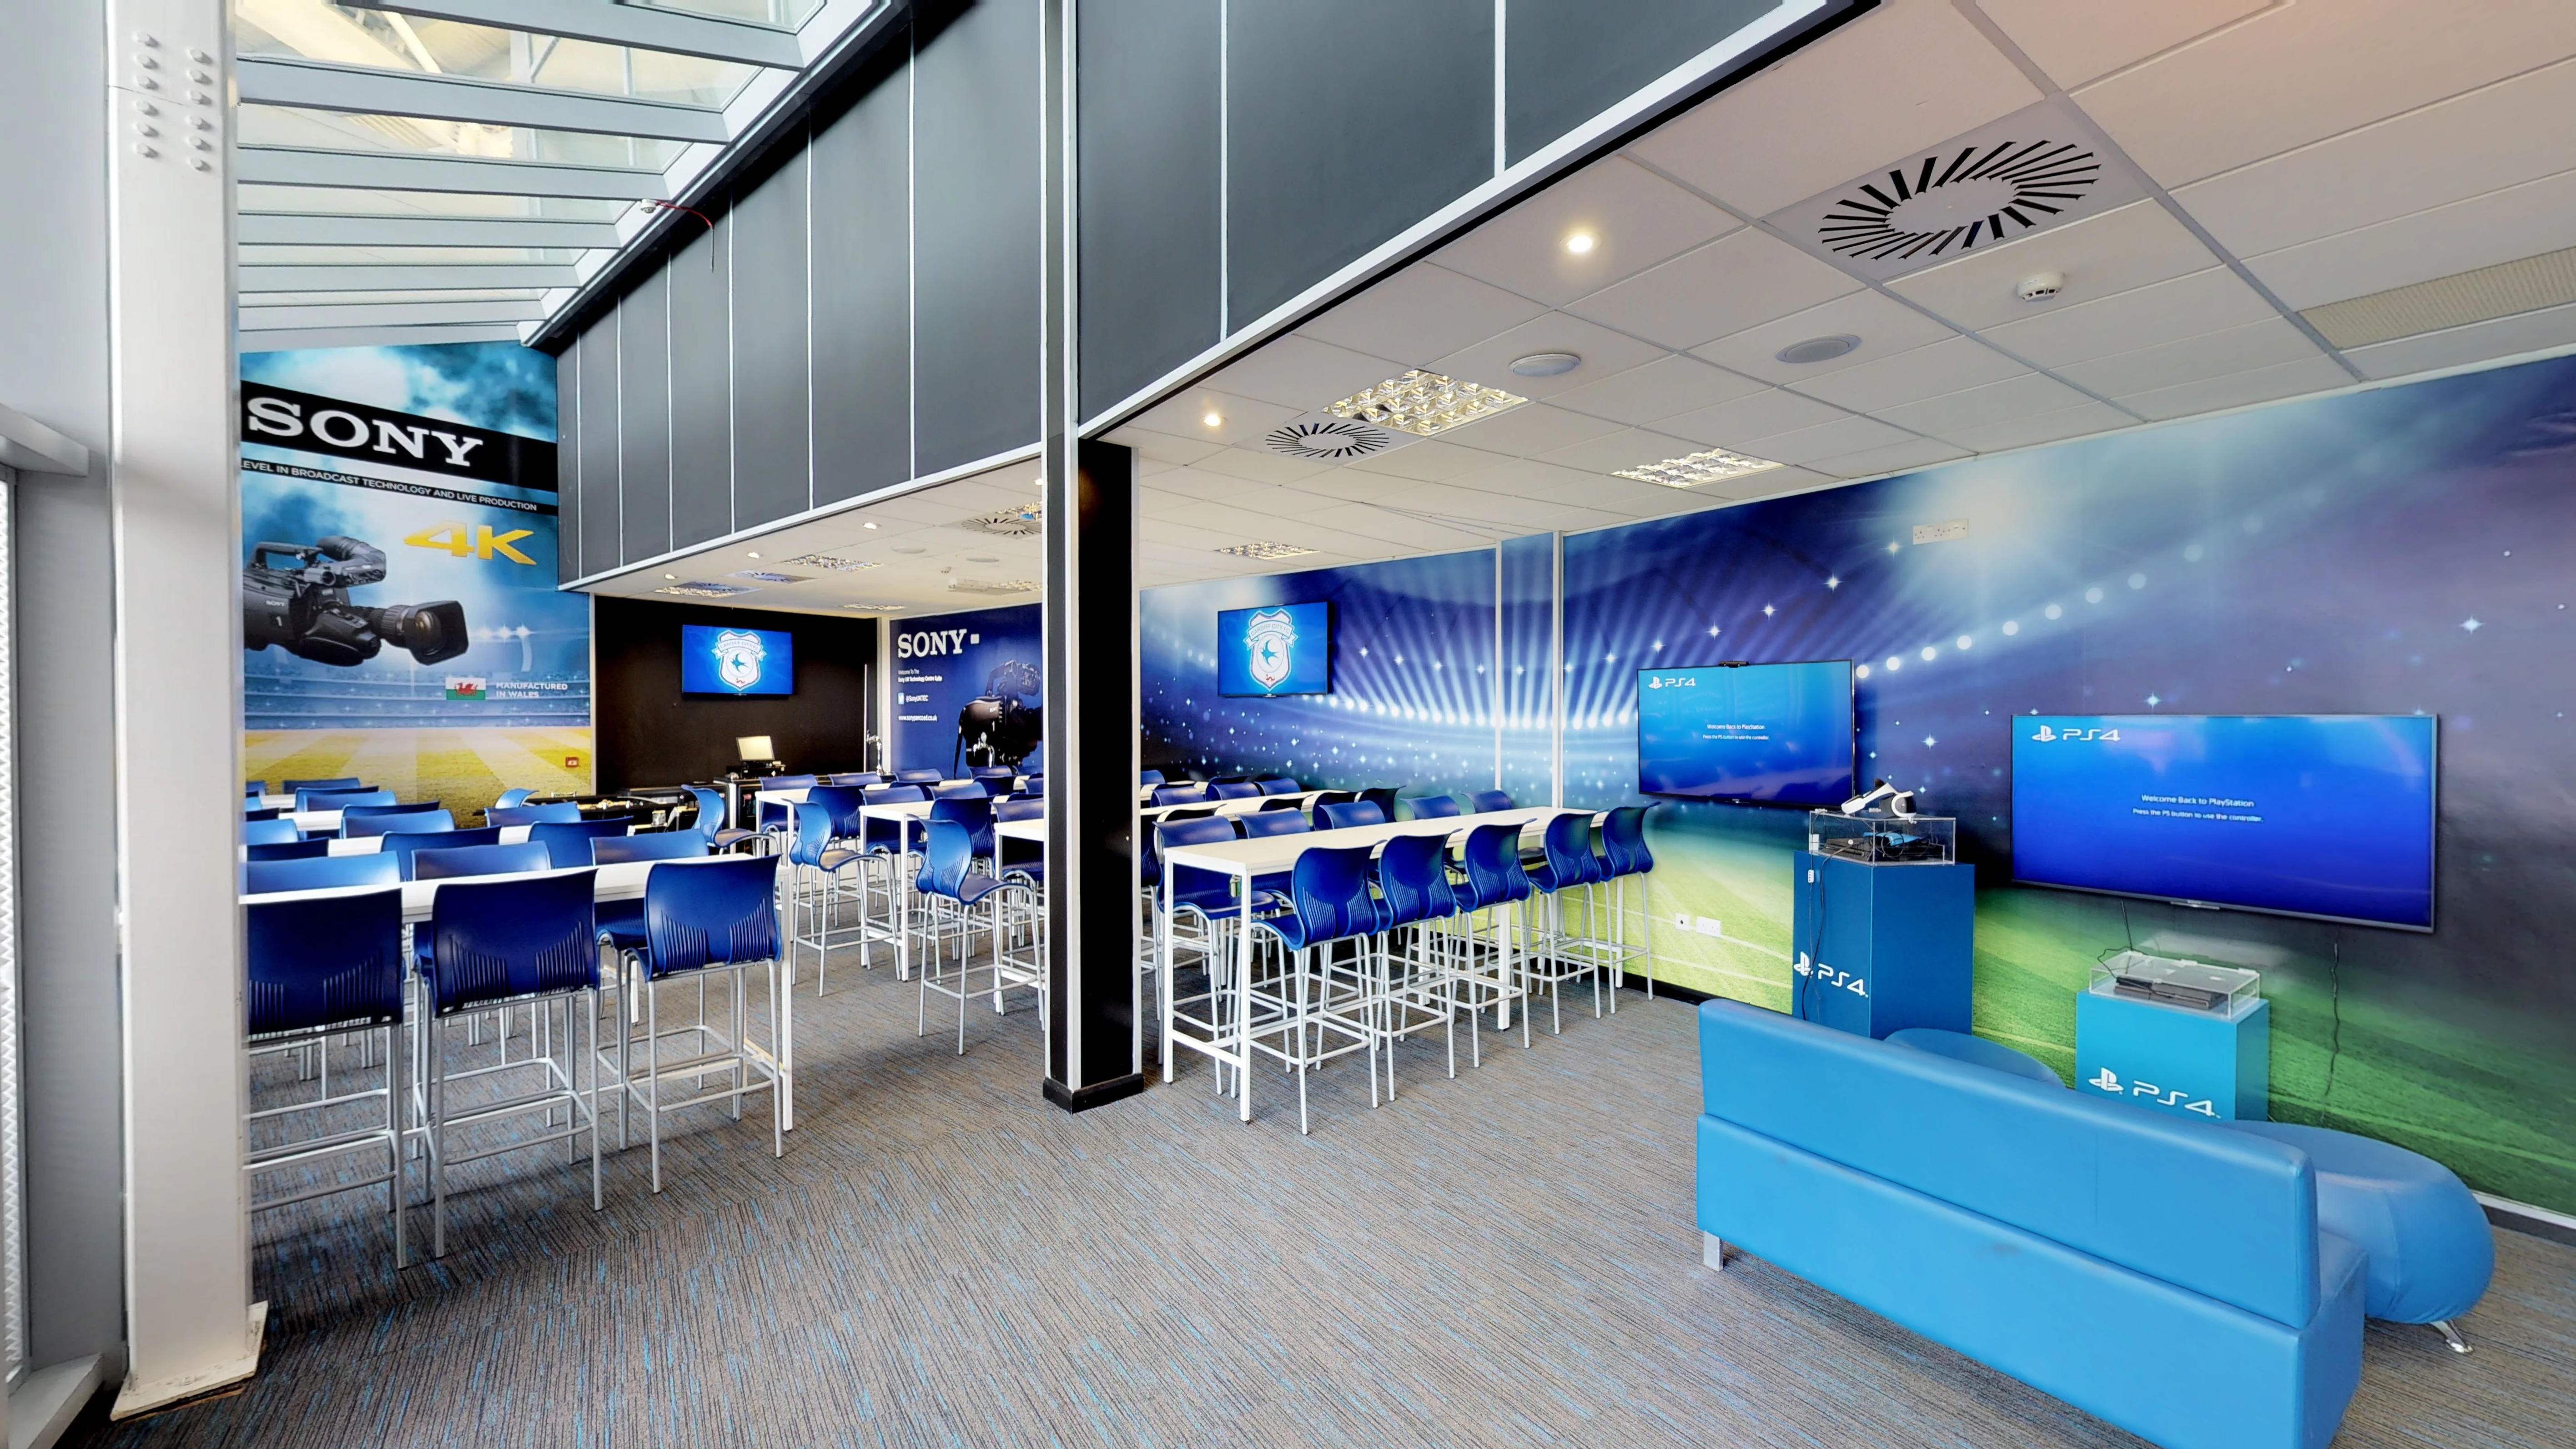 Cardiff City Meetings Events Sony Lounge(1)